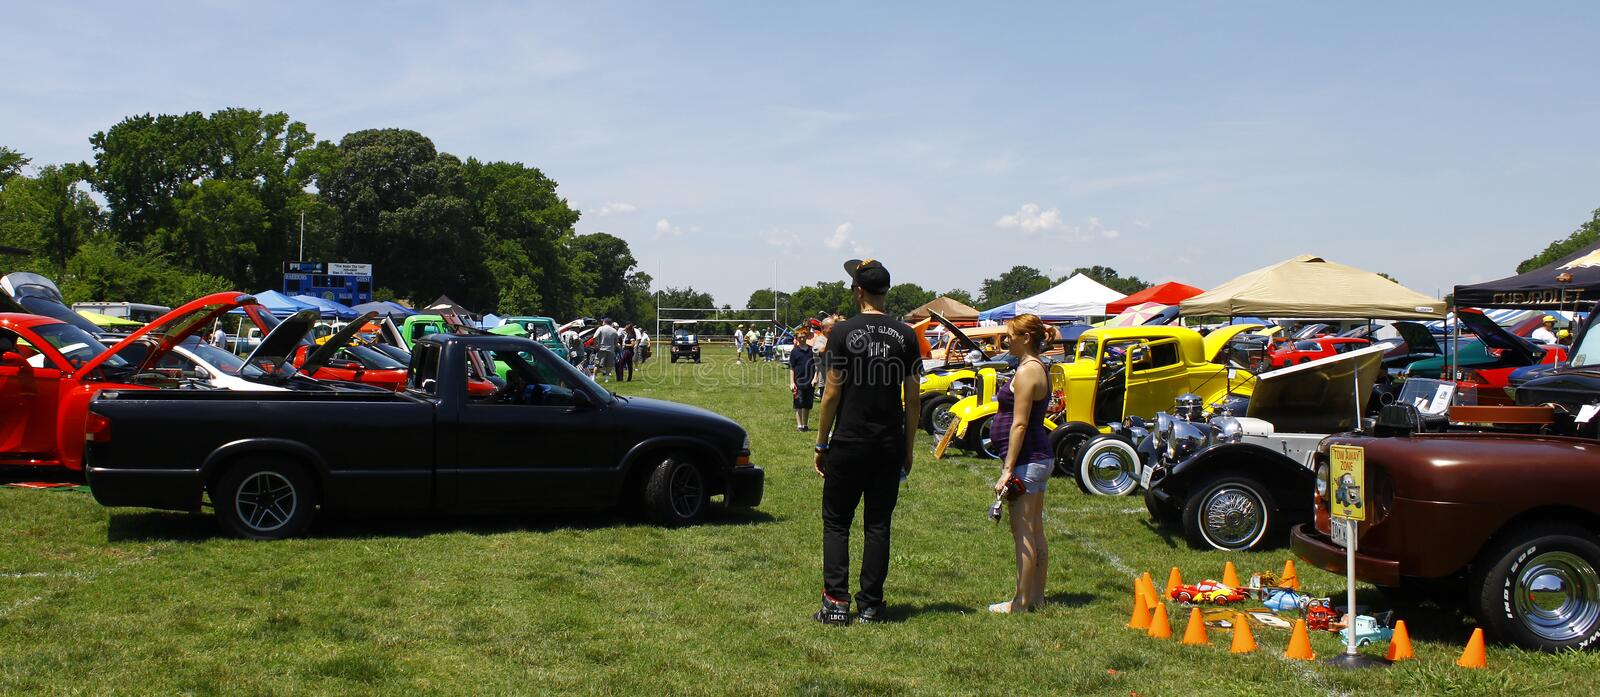 HCS Car Show stock photo